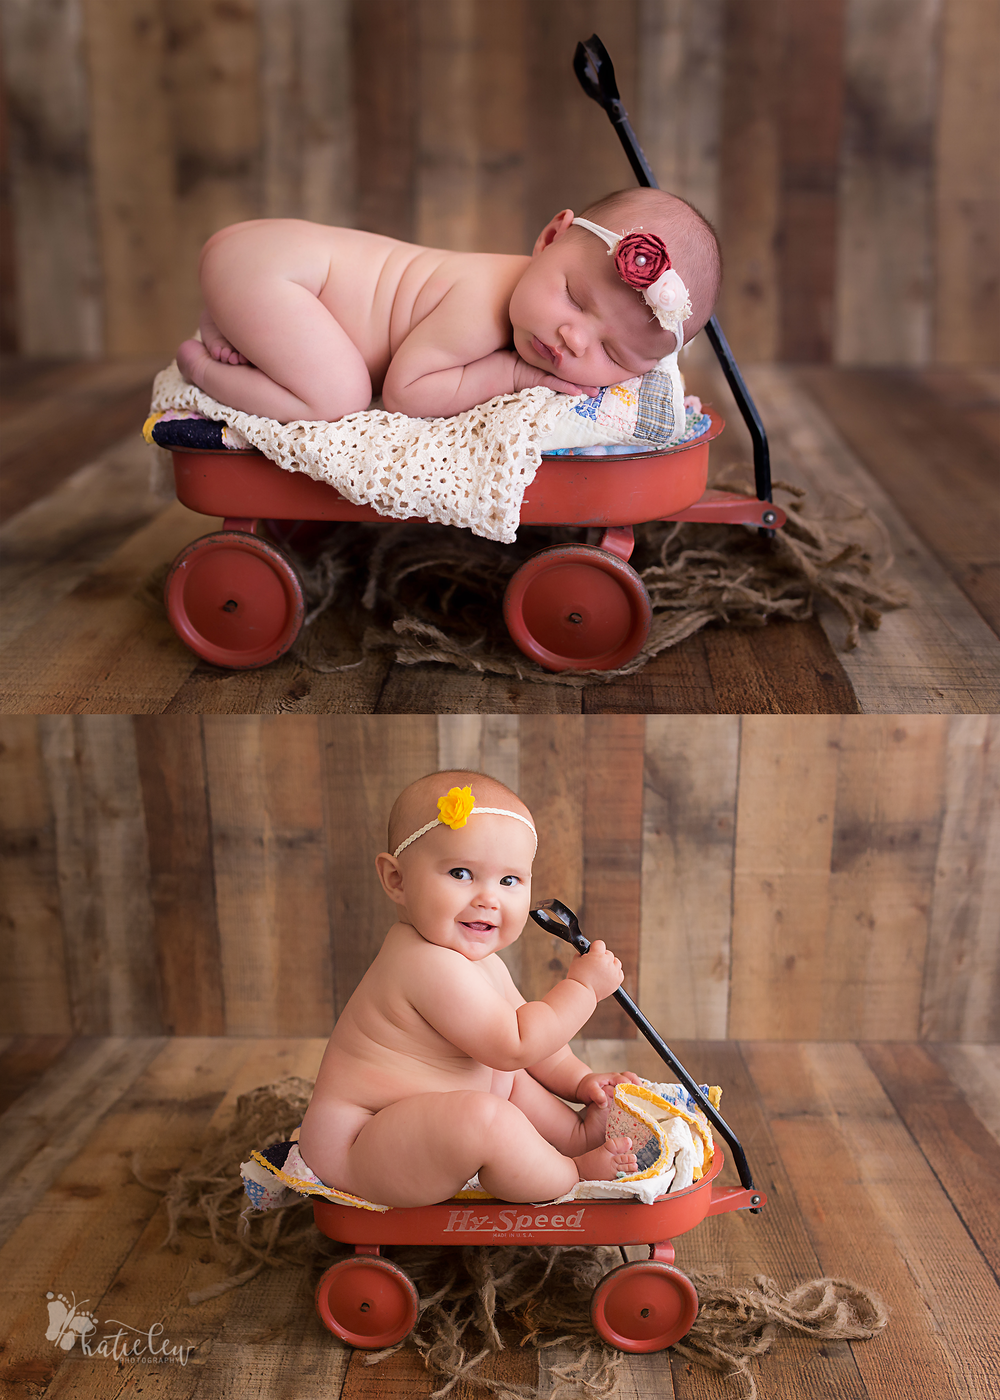 comparison image of a baby girl as a newborn and at 6 months